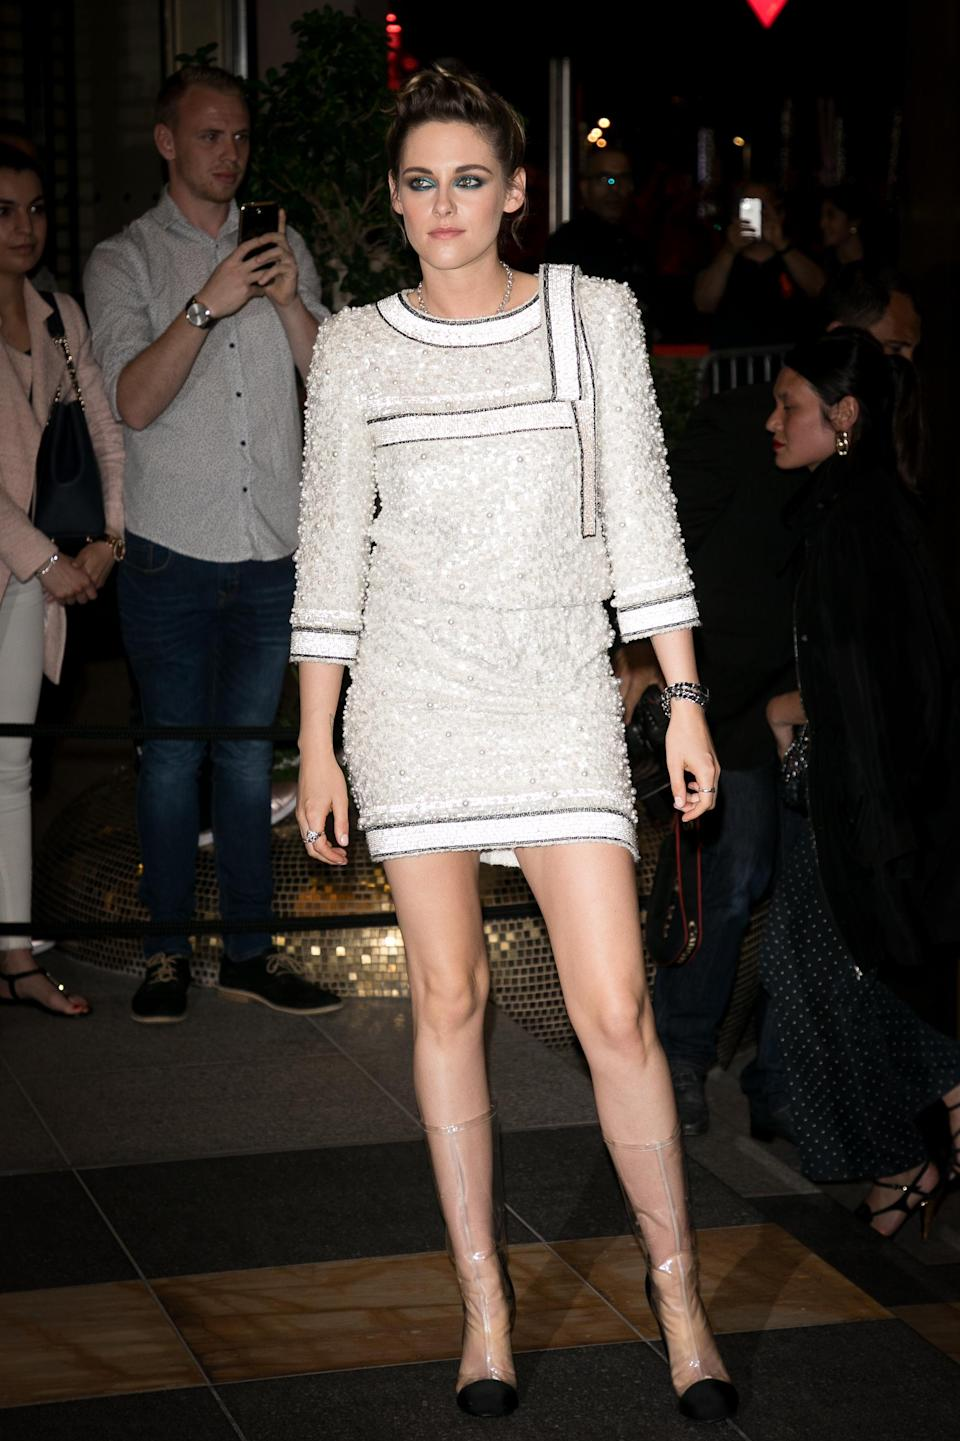 <p>Arrivin at the Chanel And The Vanity Fair France Party, Kristen Stewart took her hemline shorter wearing a sequinned mini dress by Chanel which she wore with the brand's iconic plastic boots. <br><em>[Photo: Getty]</em> </p>